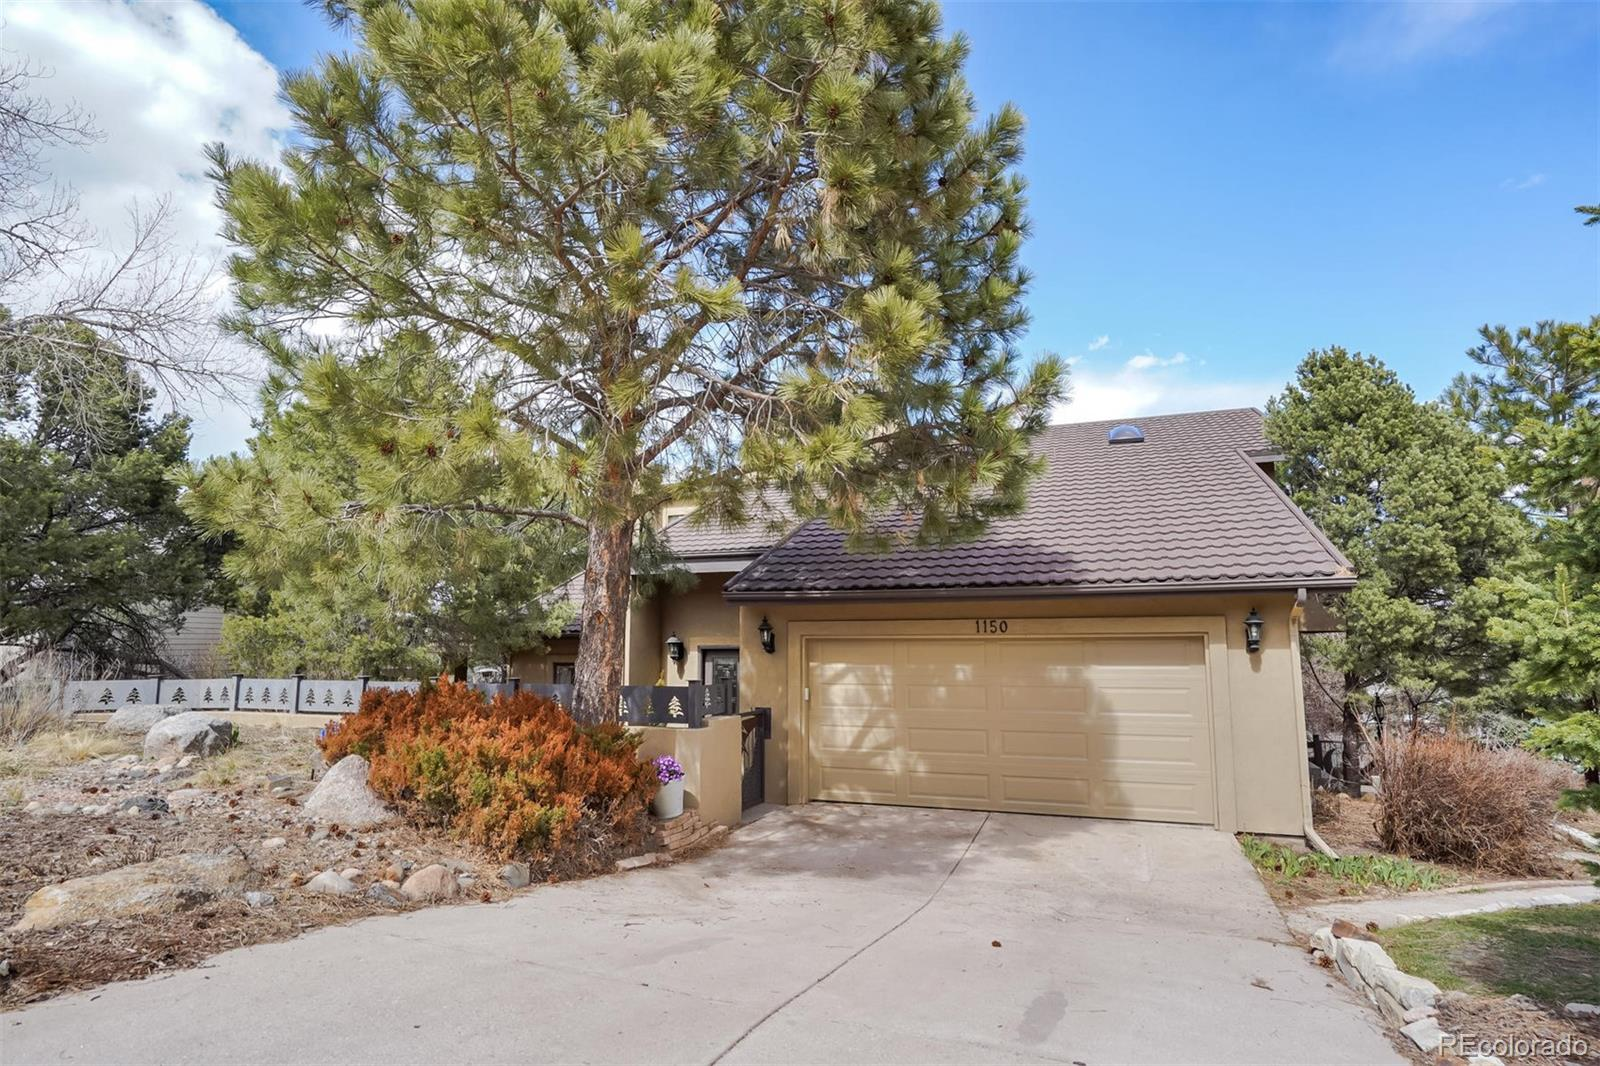 1150 Popes Valley Drive, Colorado Springs, CO 80919 - Colorado Springs, CO real estate listing